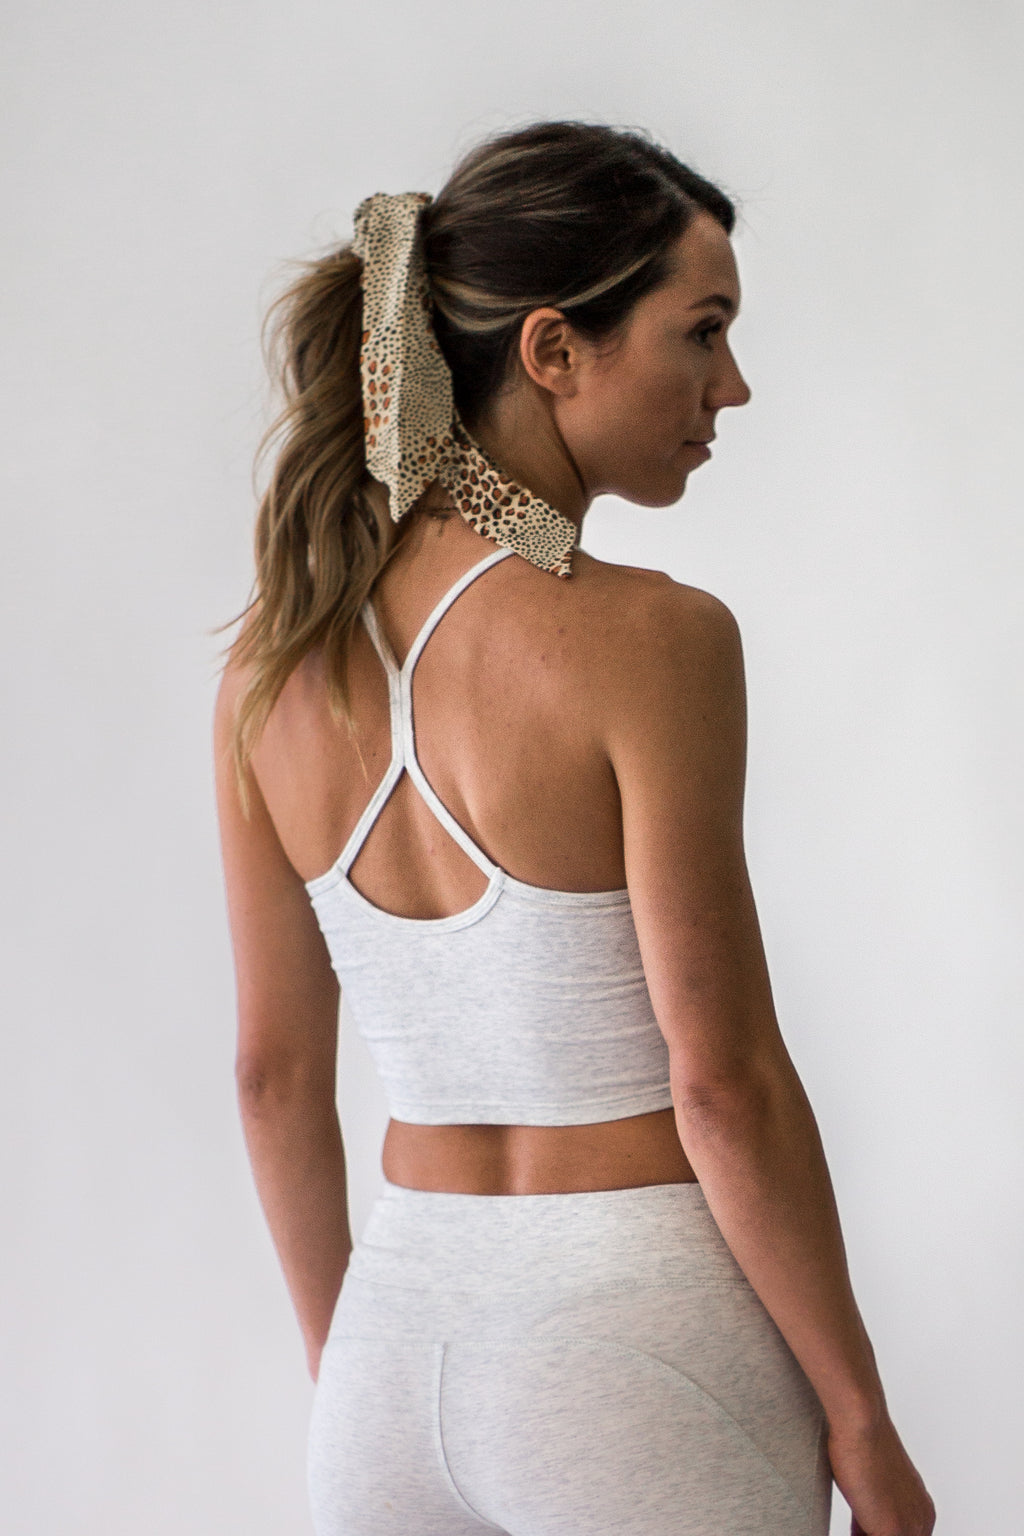 Weekend Getaway Cropped Tank - Appelov